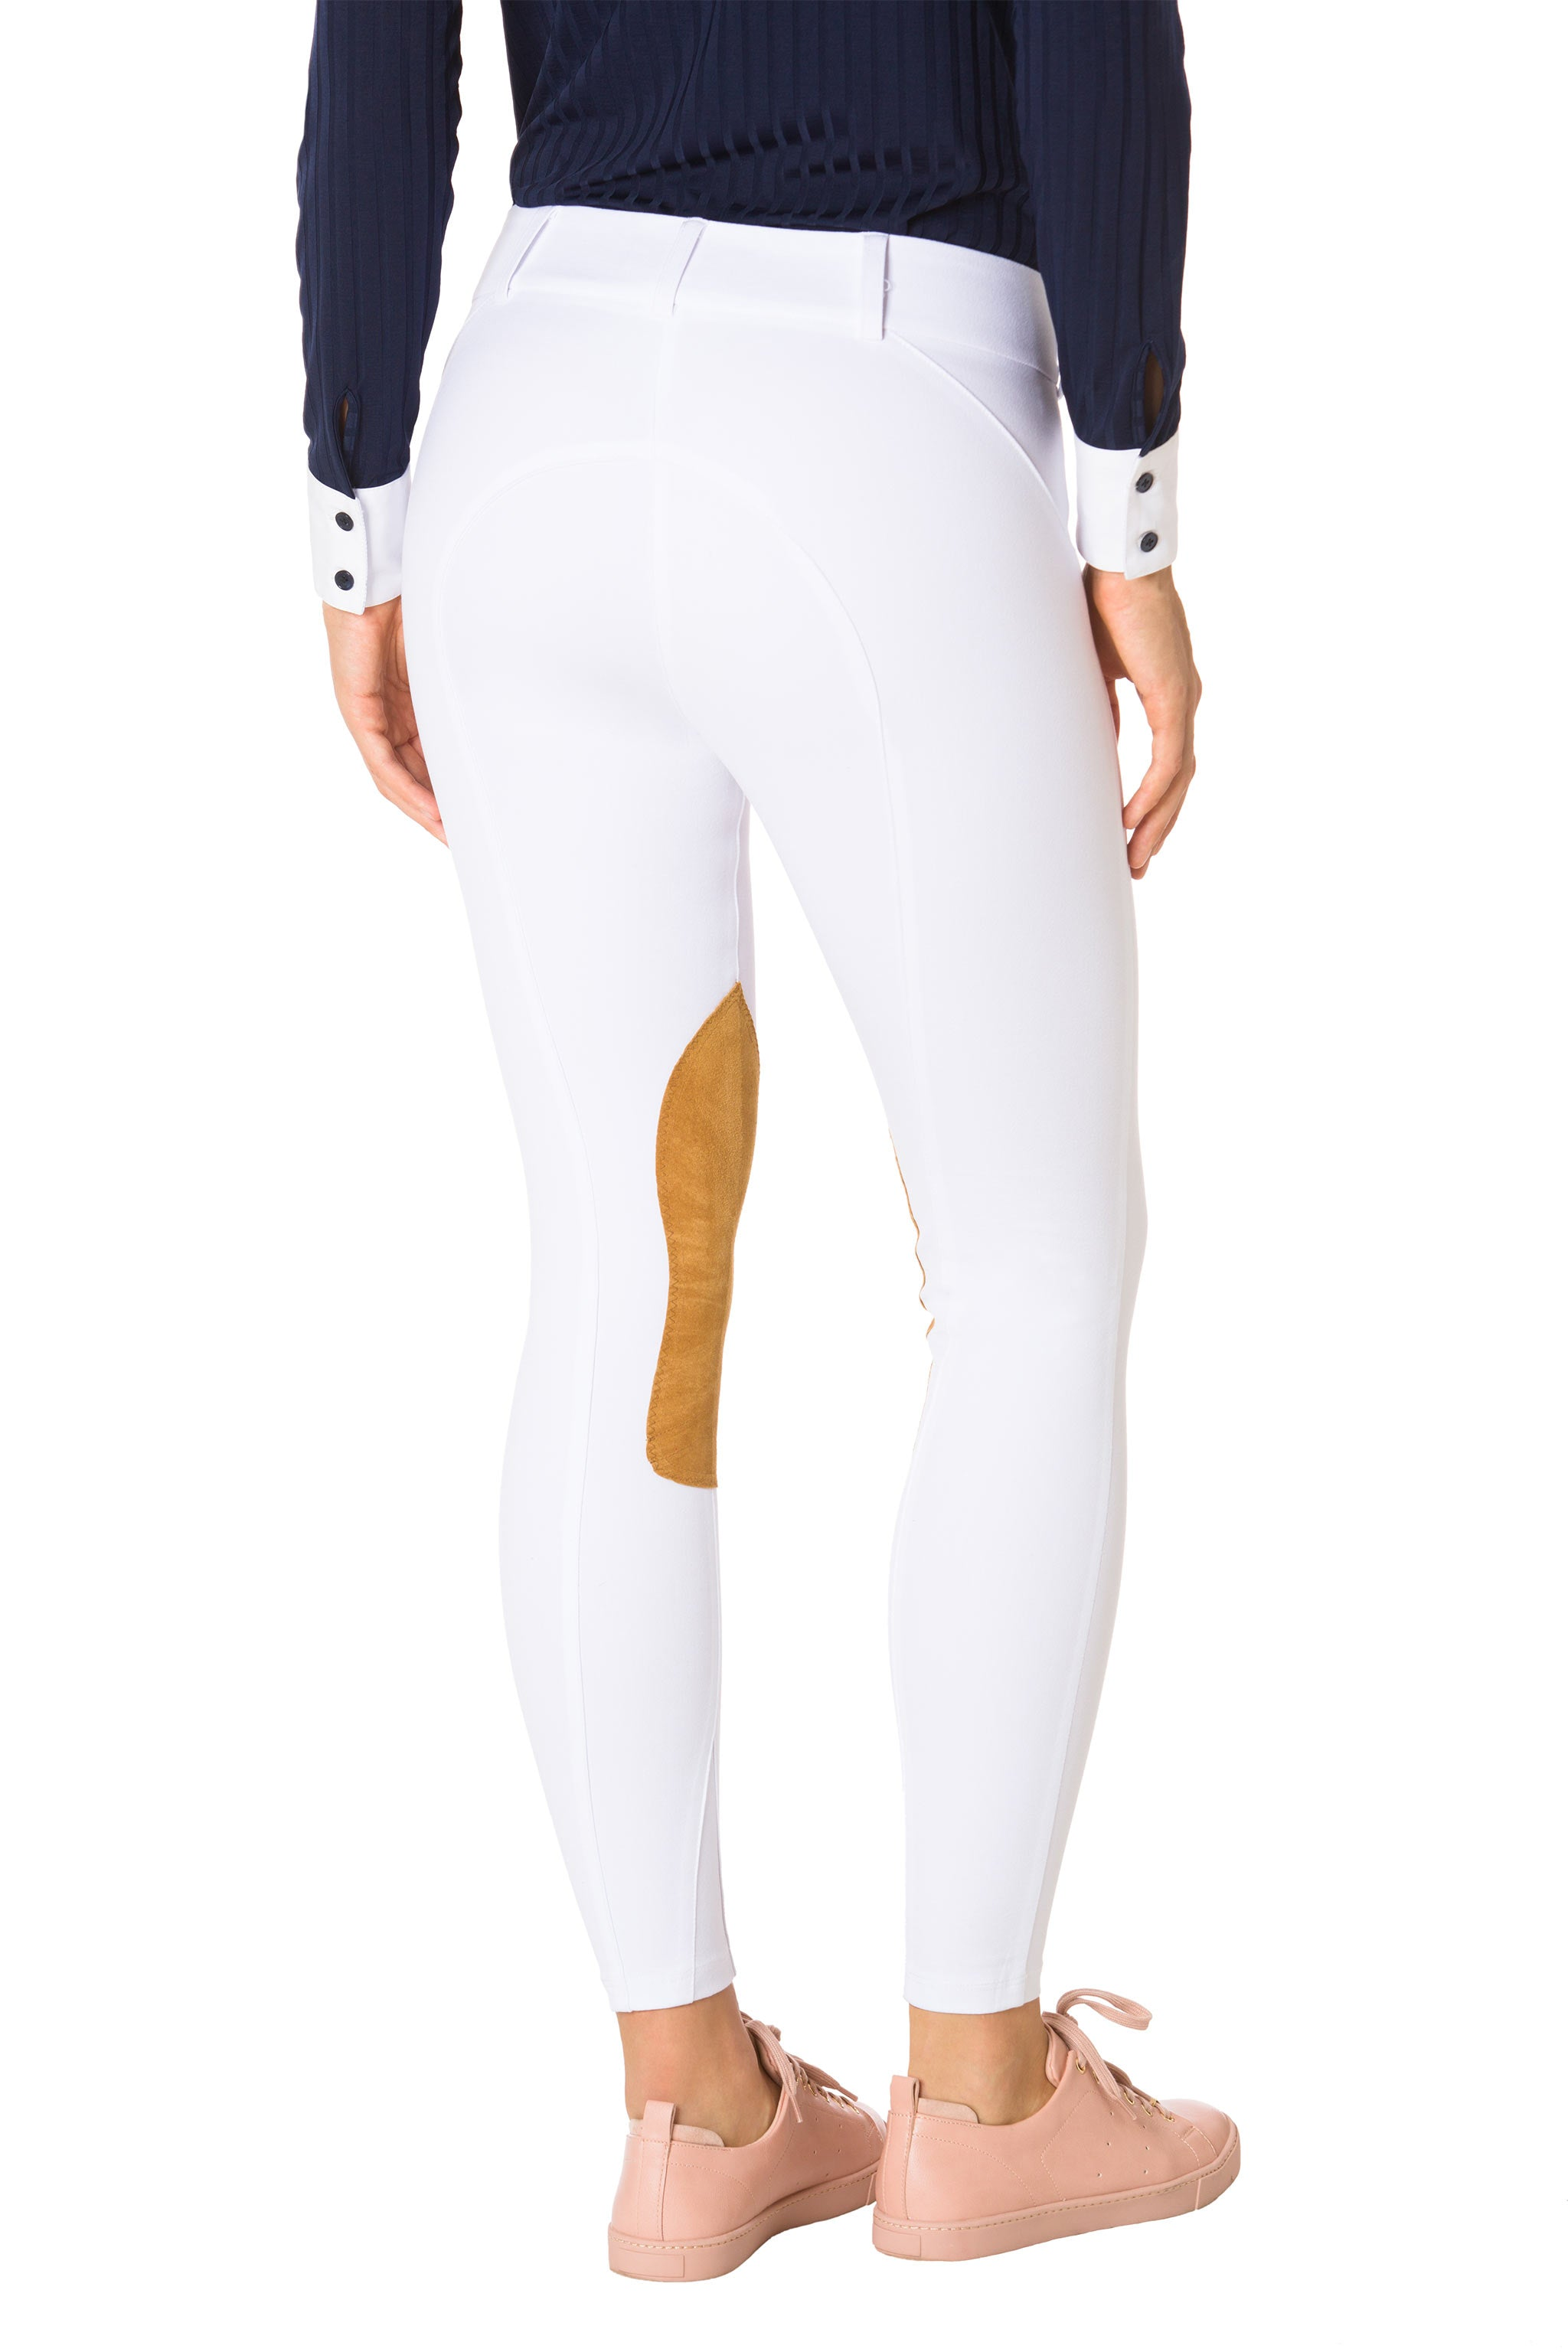 Sunday White-The Derby Riding Pant